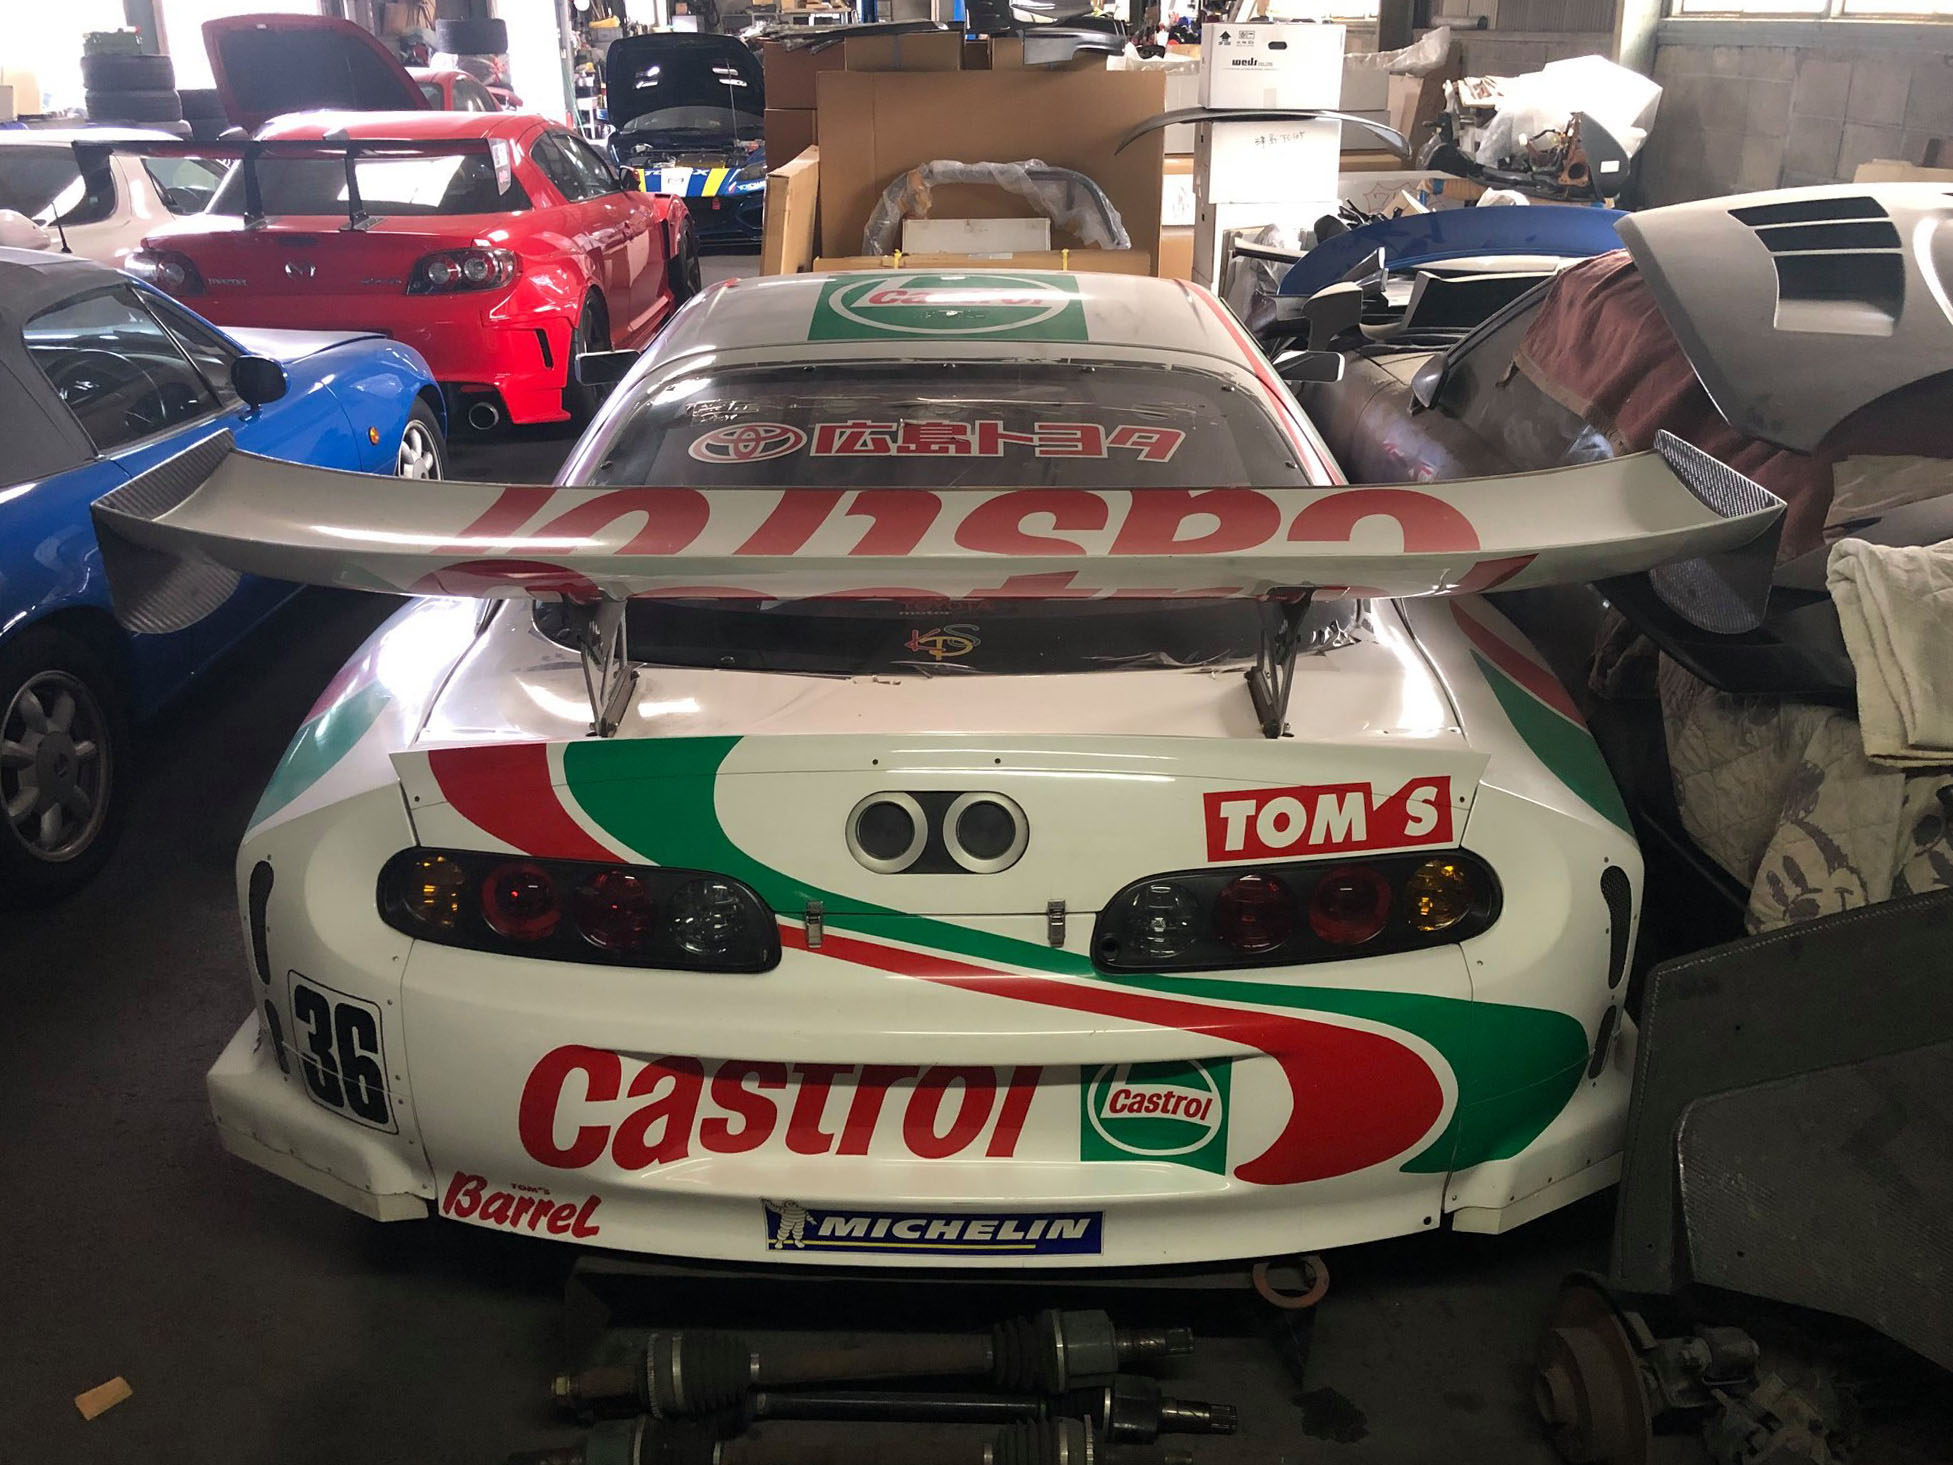 Castrol Tom's Supra restoration project